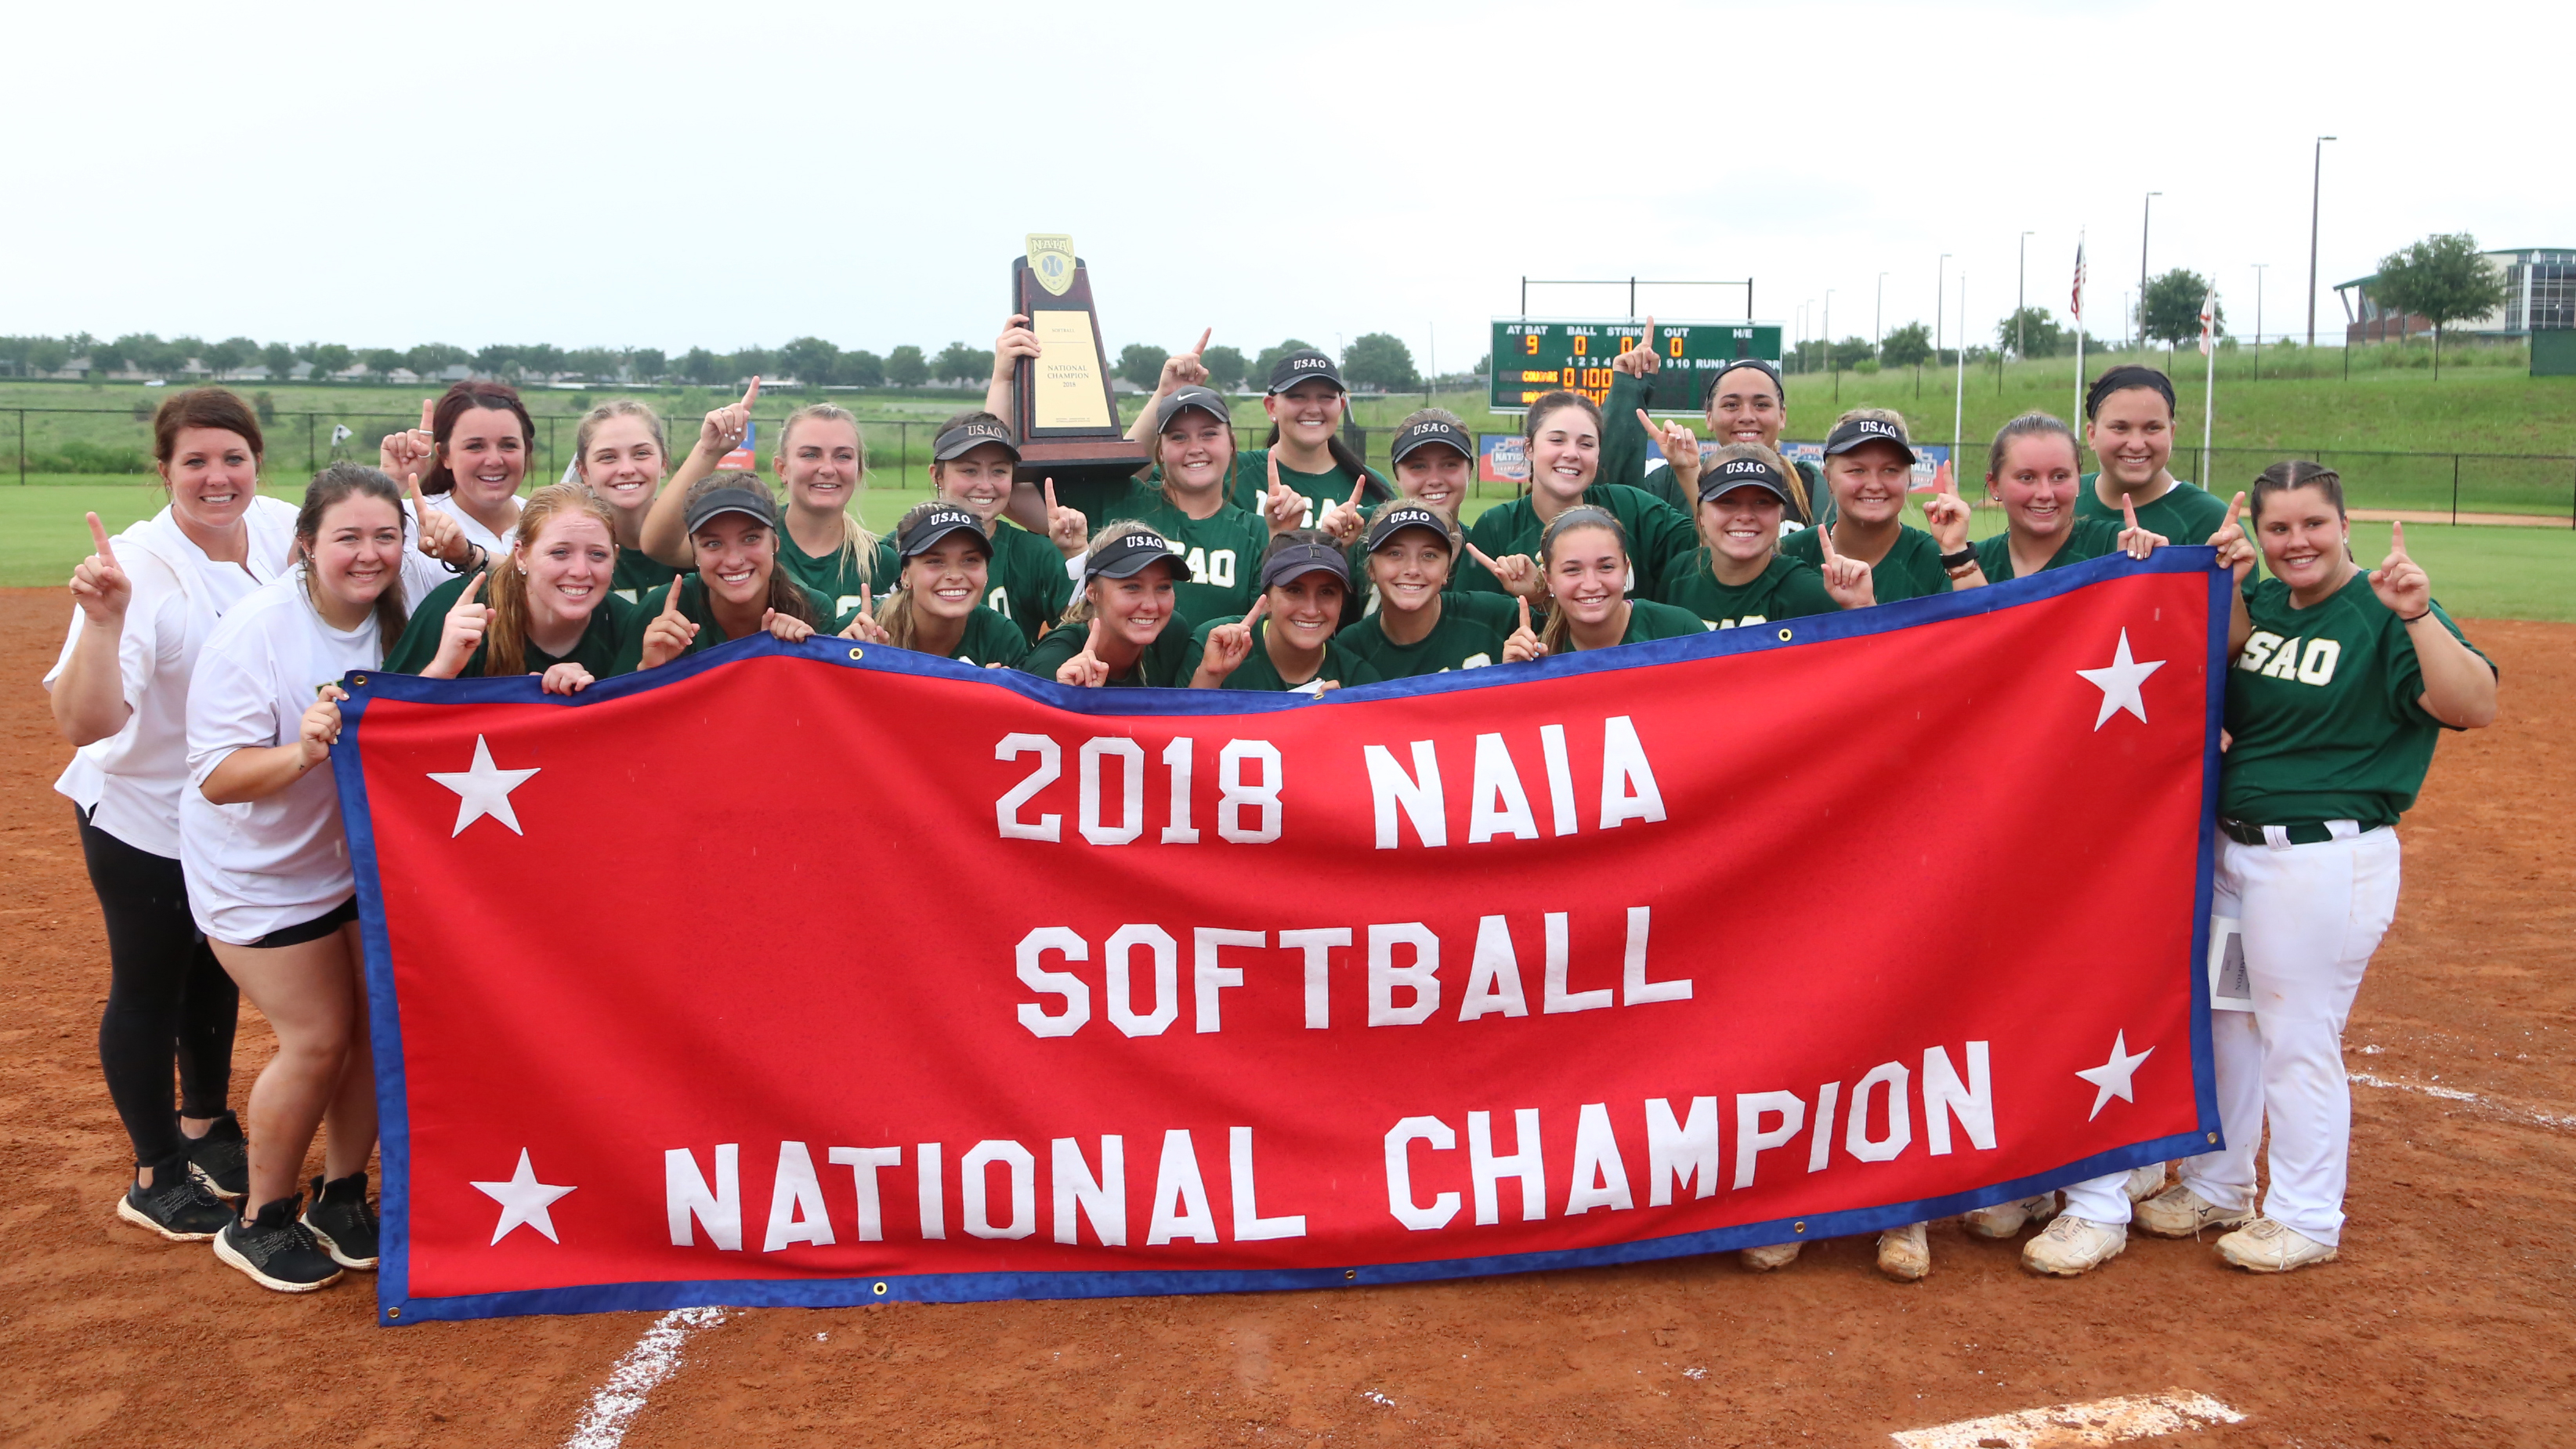 Science & Arts (Okla.) Wins First Softball World Series Title